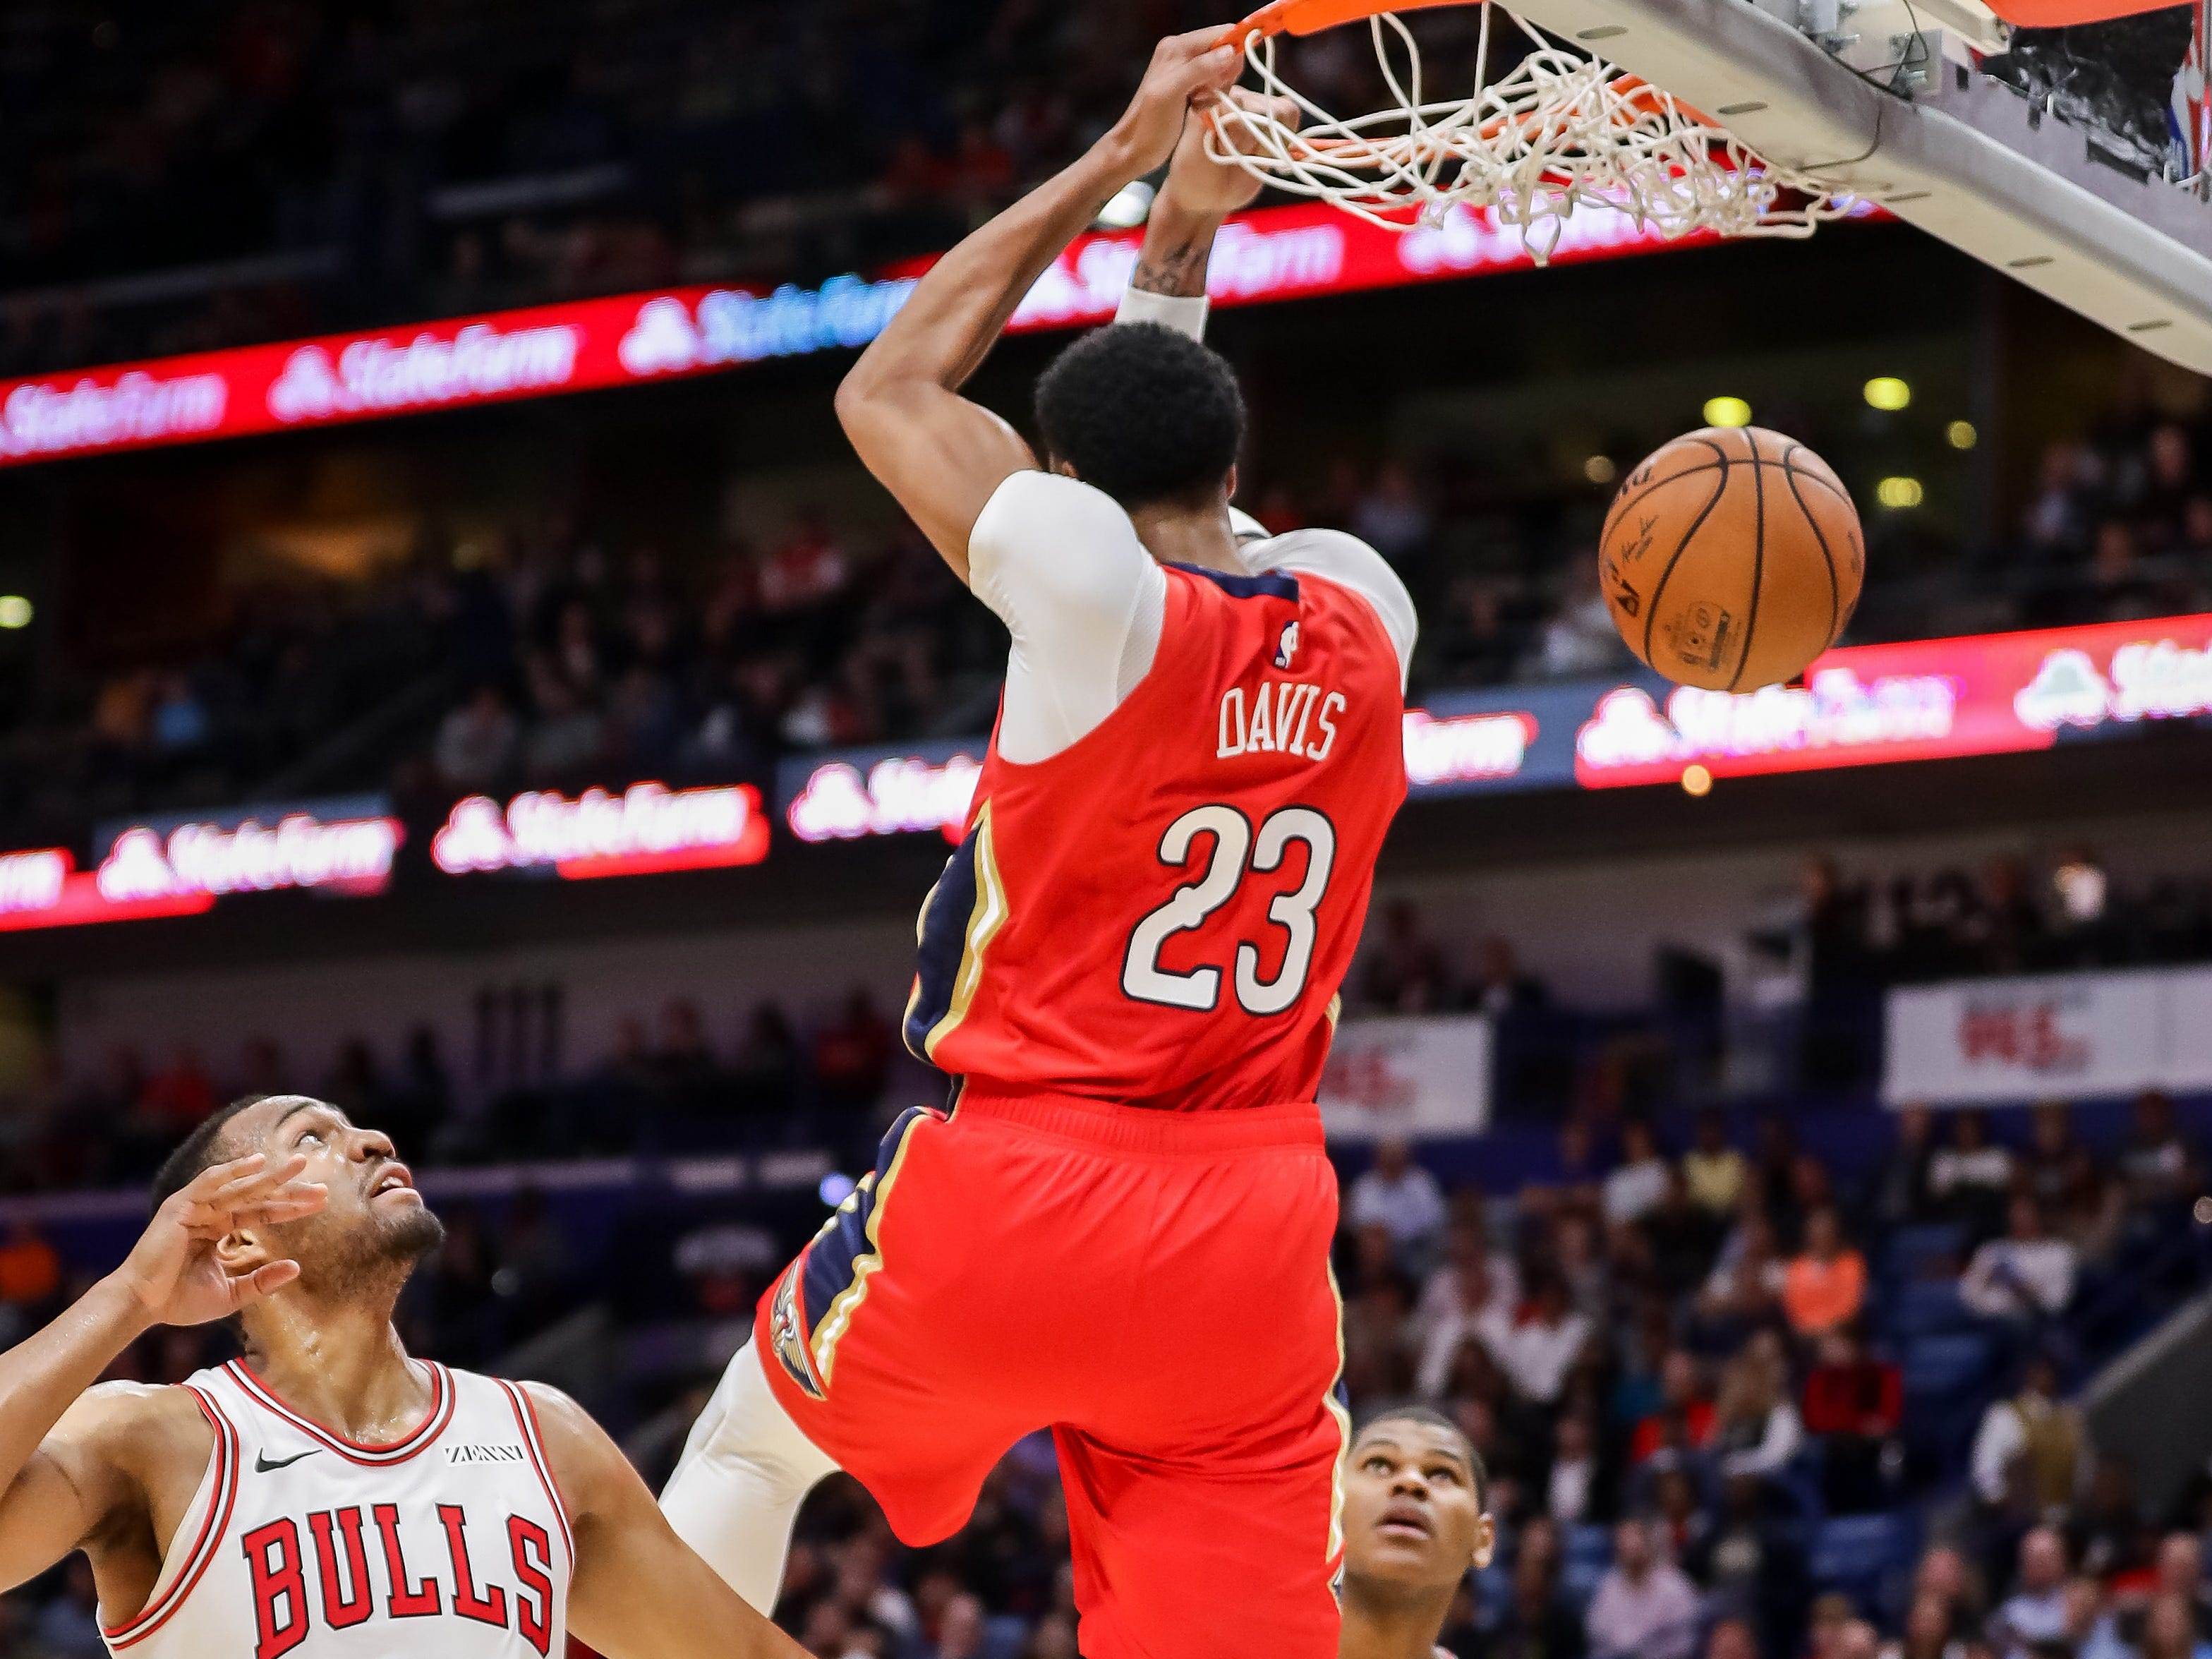 Nov. 7: Pelicans forward Anthony Davis finishes off a reverse alley-oop with a two-handed flush during the first half against the Bulls in New Orleans.